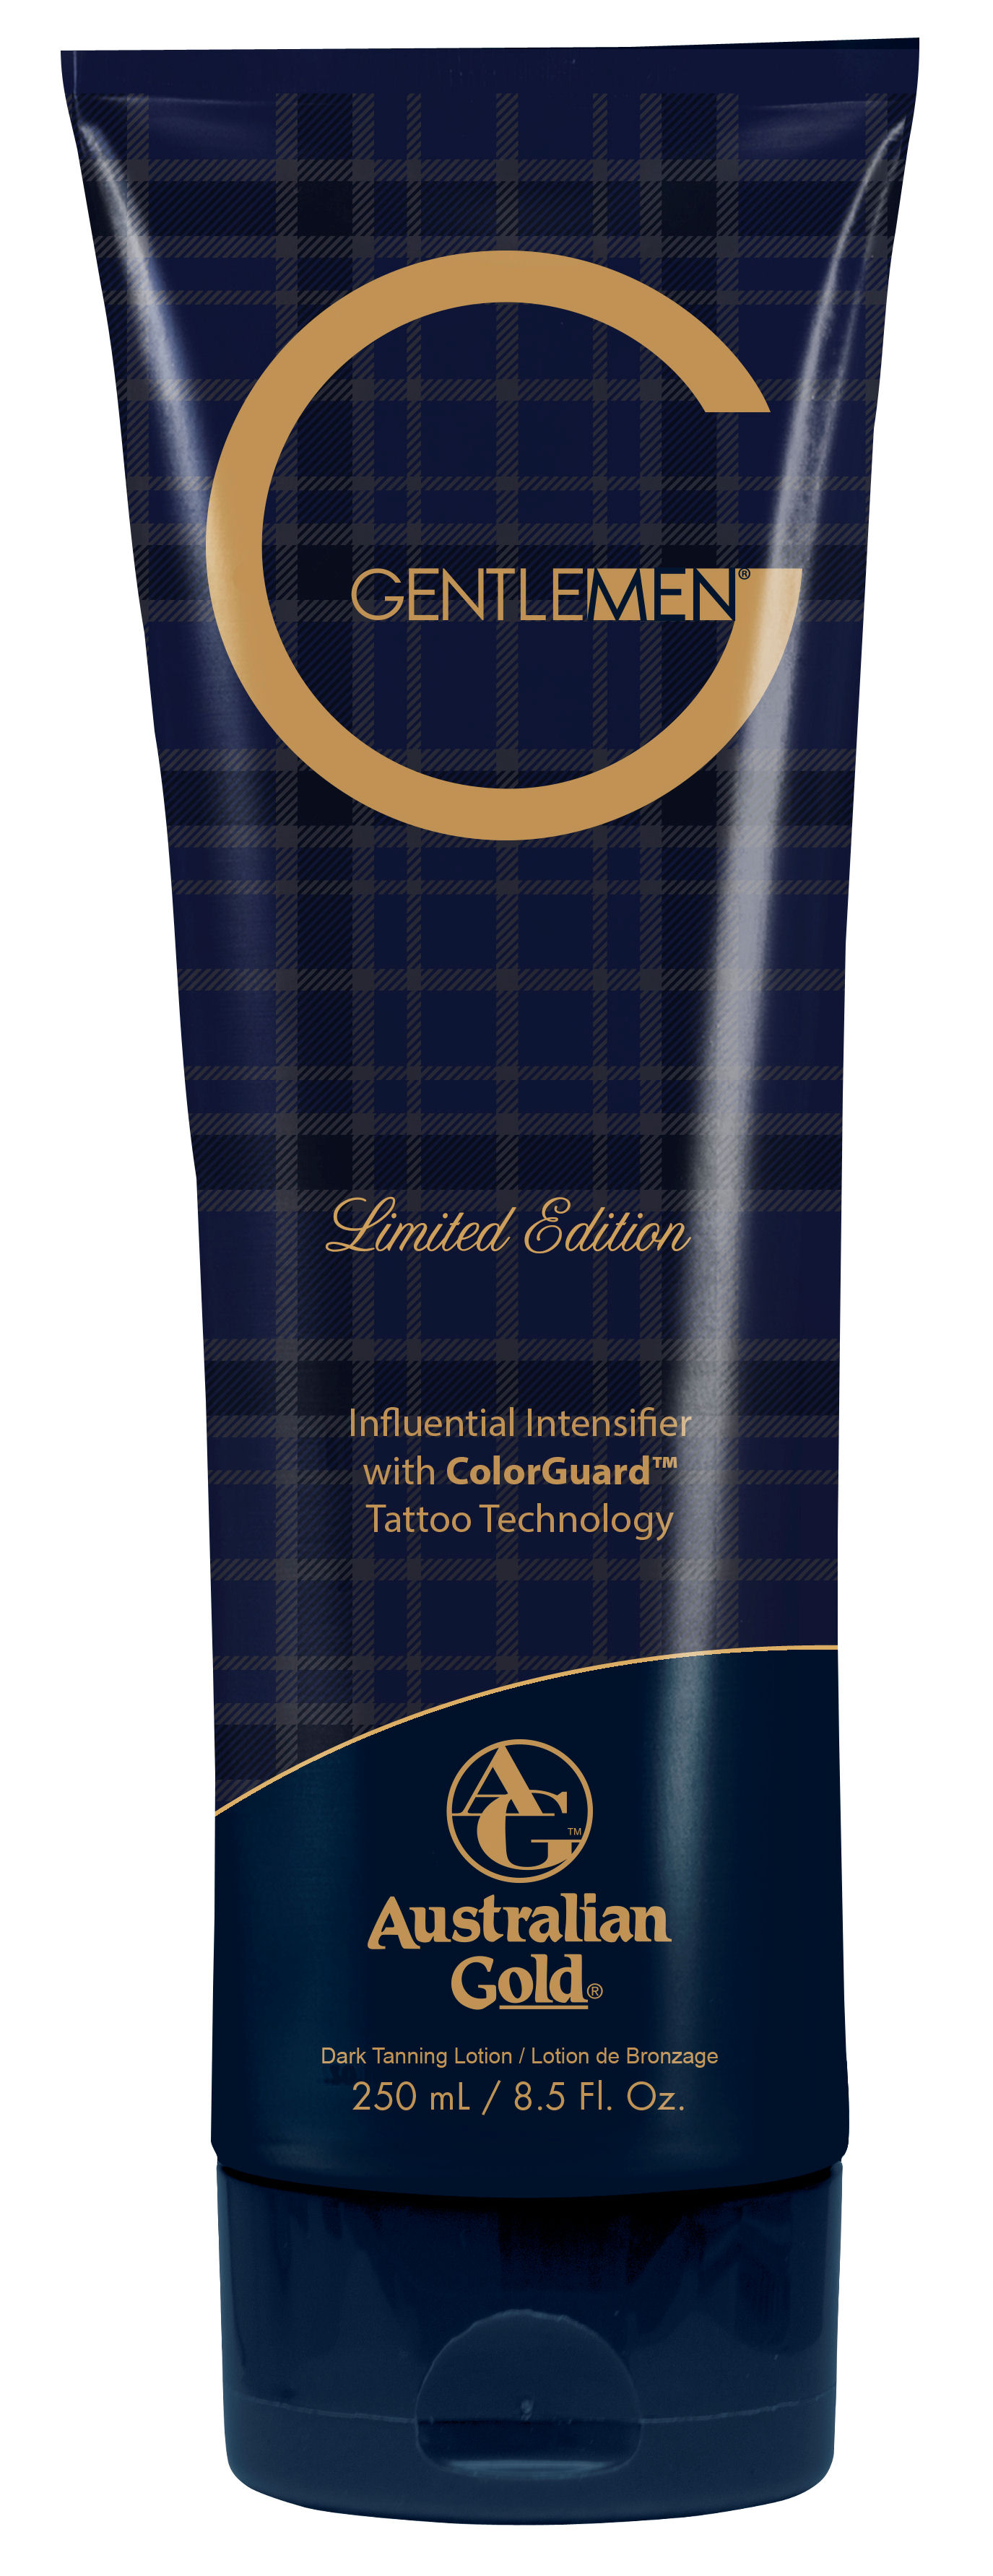 G Gentlemen® Limited Edition Intensifier with ColorGuard™ Tattoo Technology